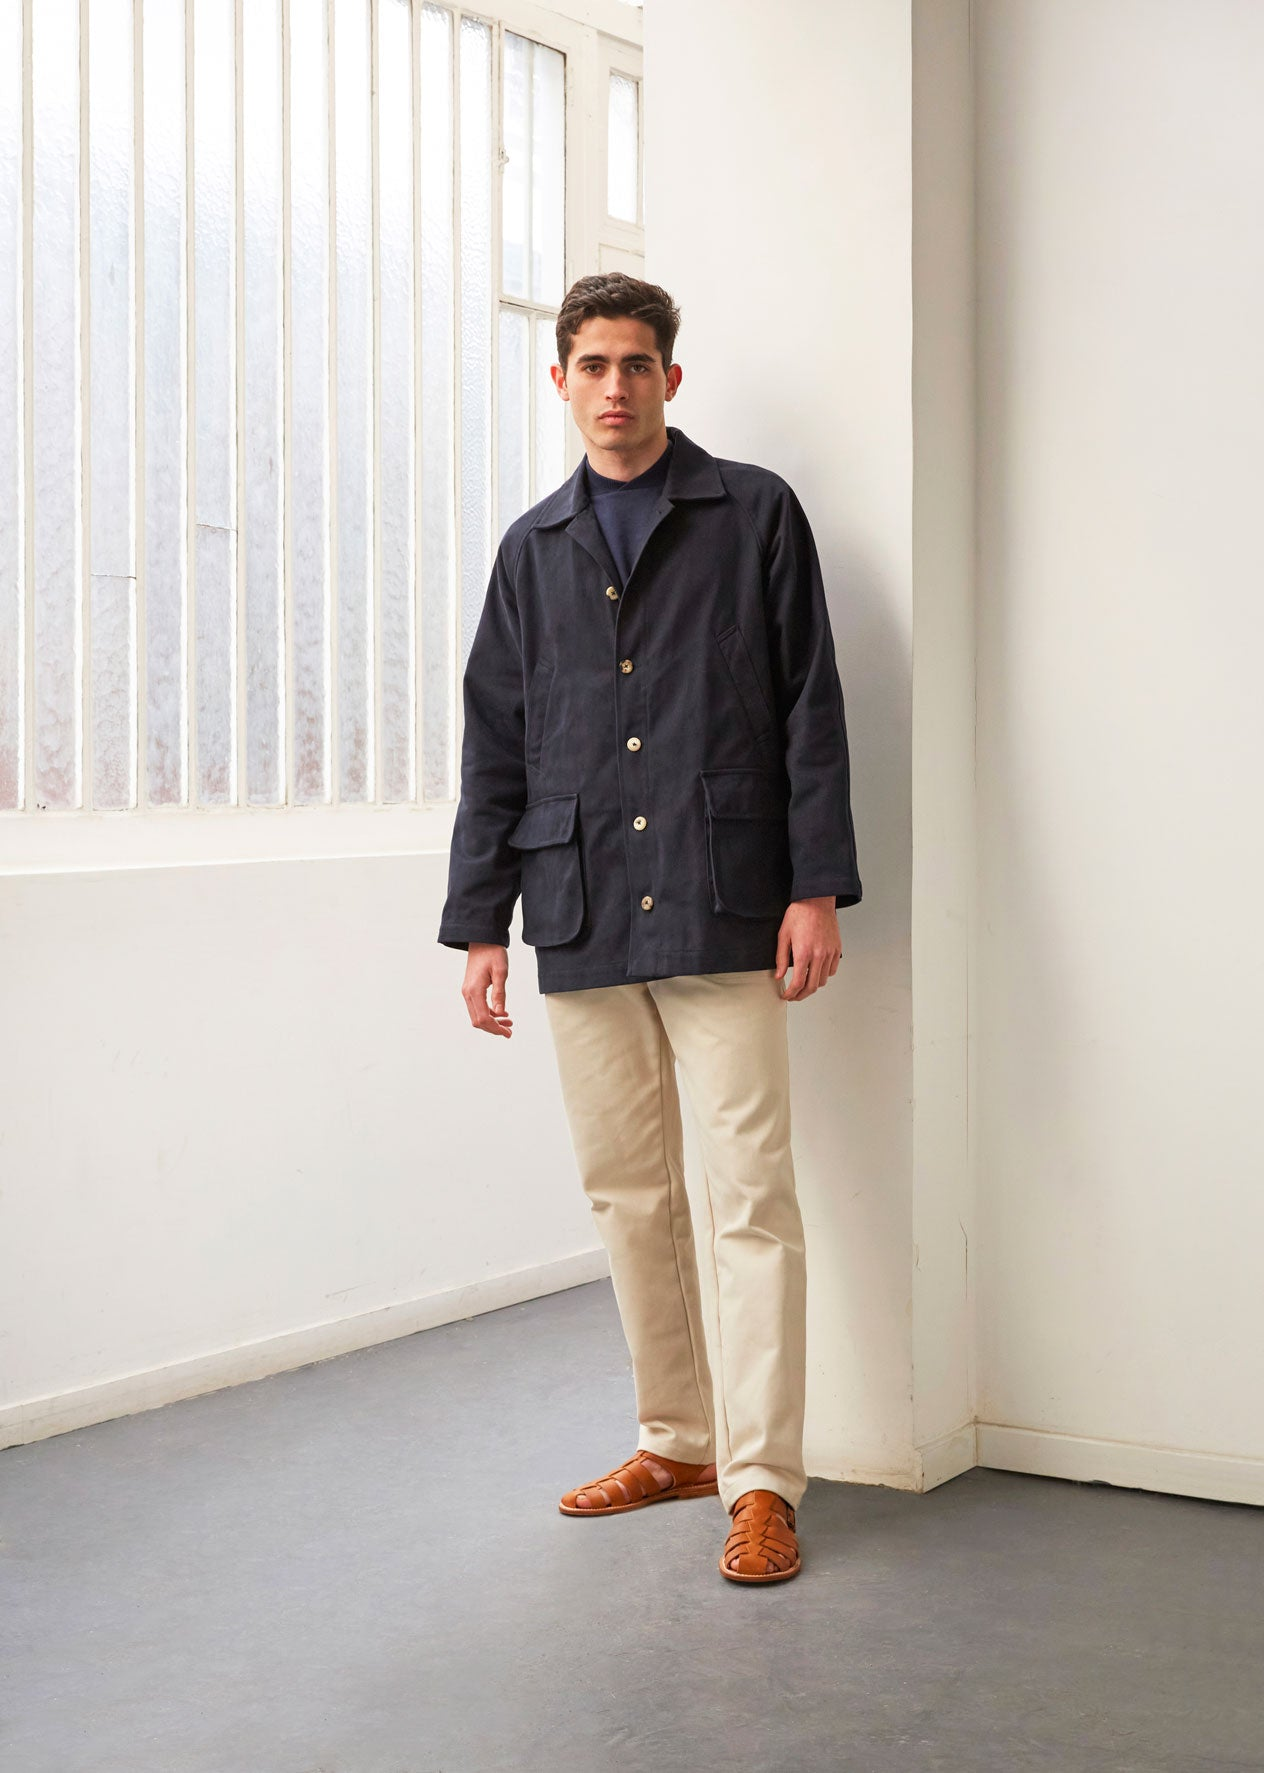 Hunting jacket - Heavy cotton drill - Navy - De Bonne Facture